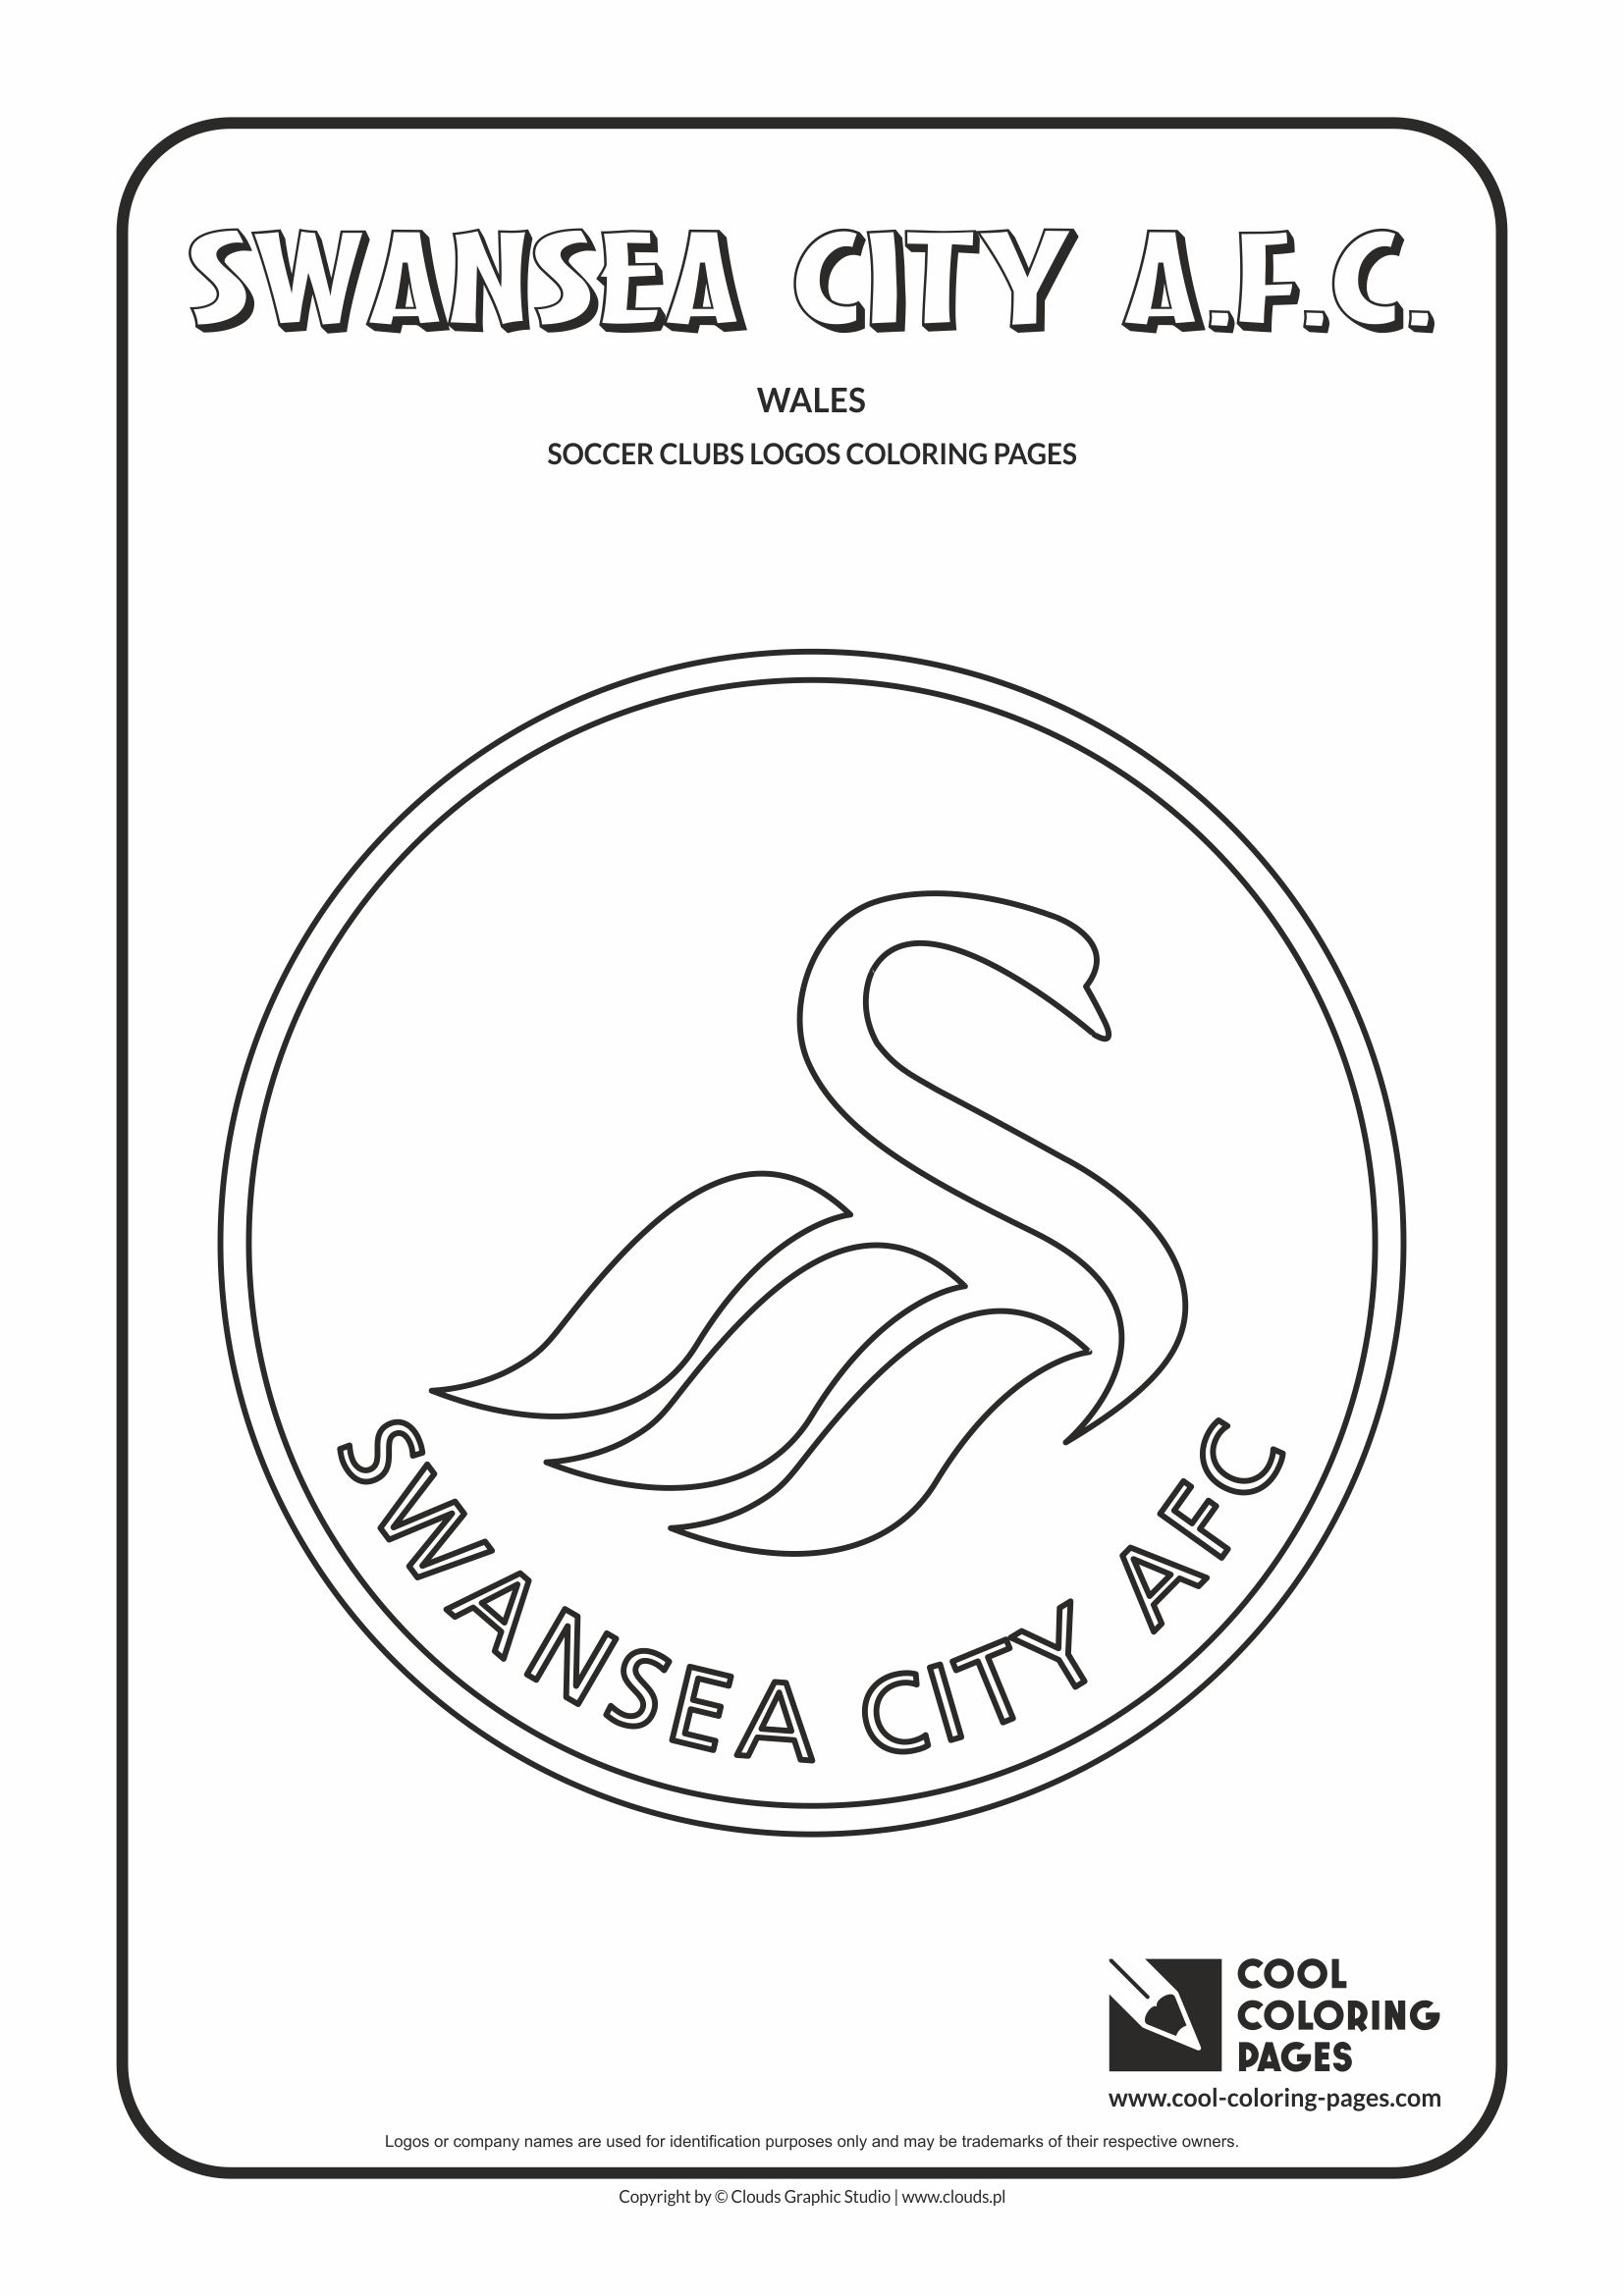 Swansea City A.F.C. logo coloring / Coloring page with Swansea City A.F.C. logo / Swansea City A.F.C. logo colouring page.